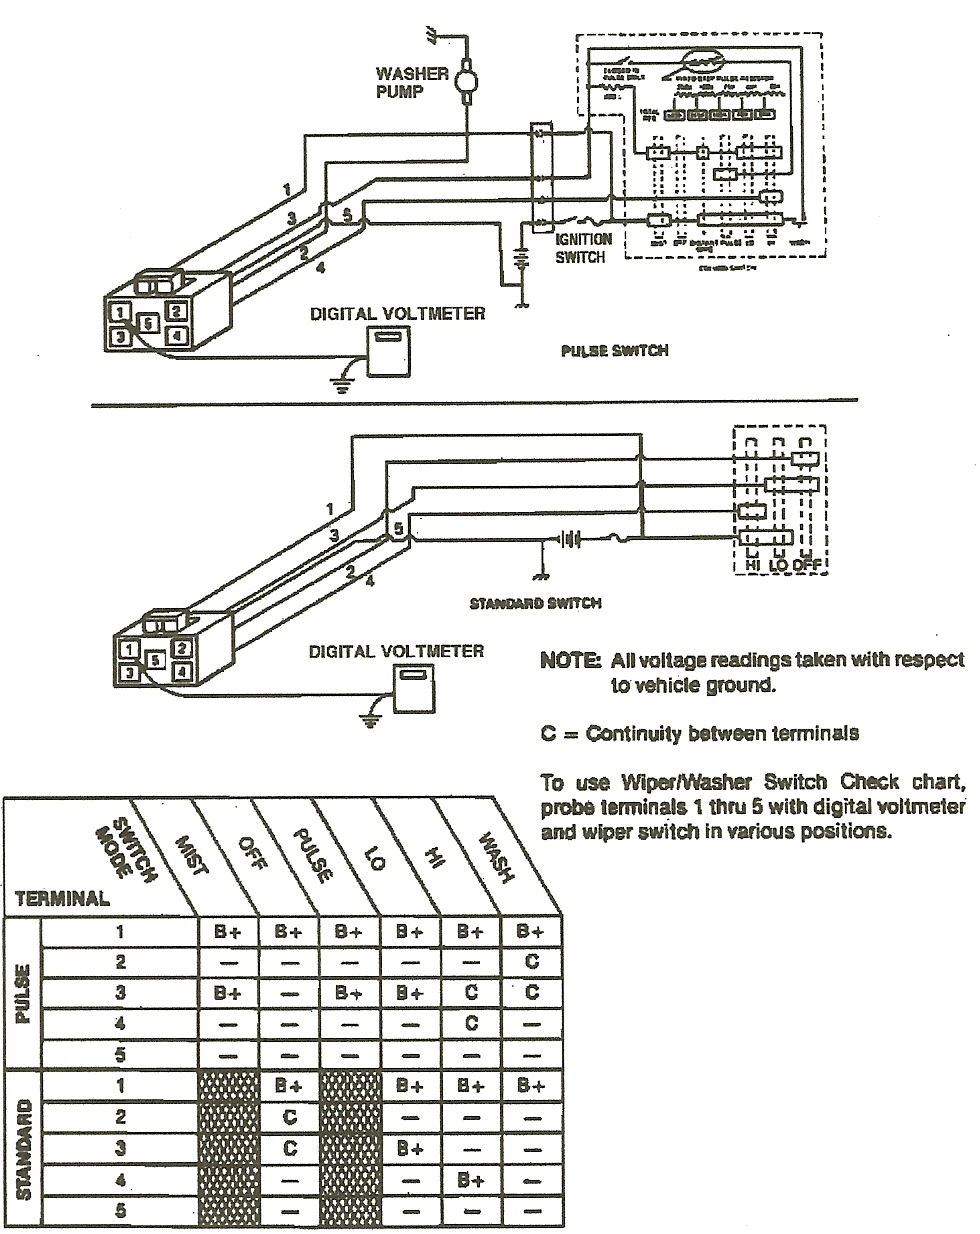 2010 12 28_054521_pin_out_for_wipper 1988 chevy truck wiring diagram,truck free download printable,1988 Chevy 1500 Truck Wiring Diagrams